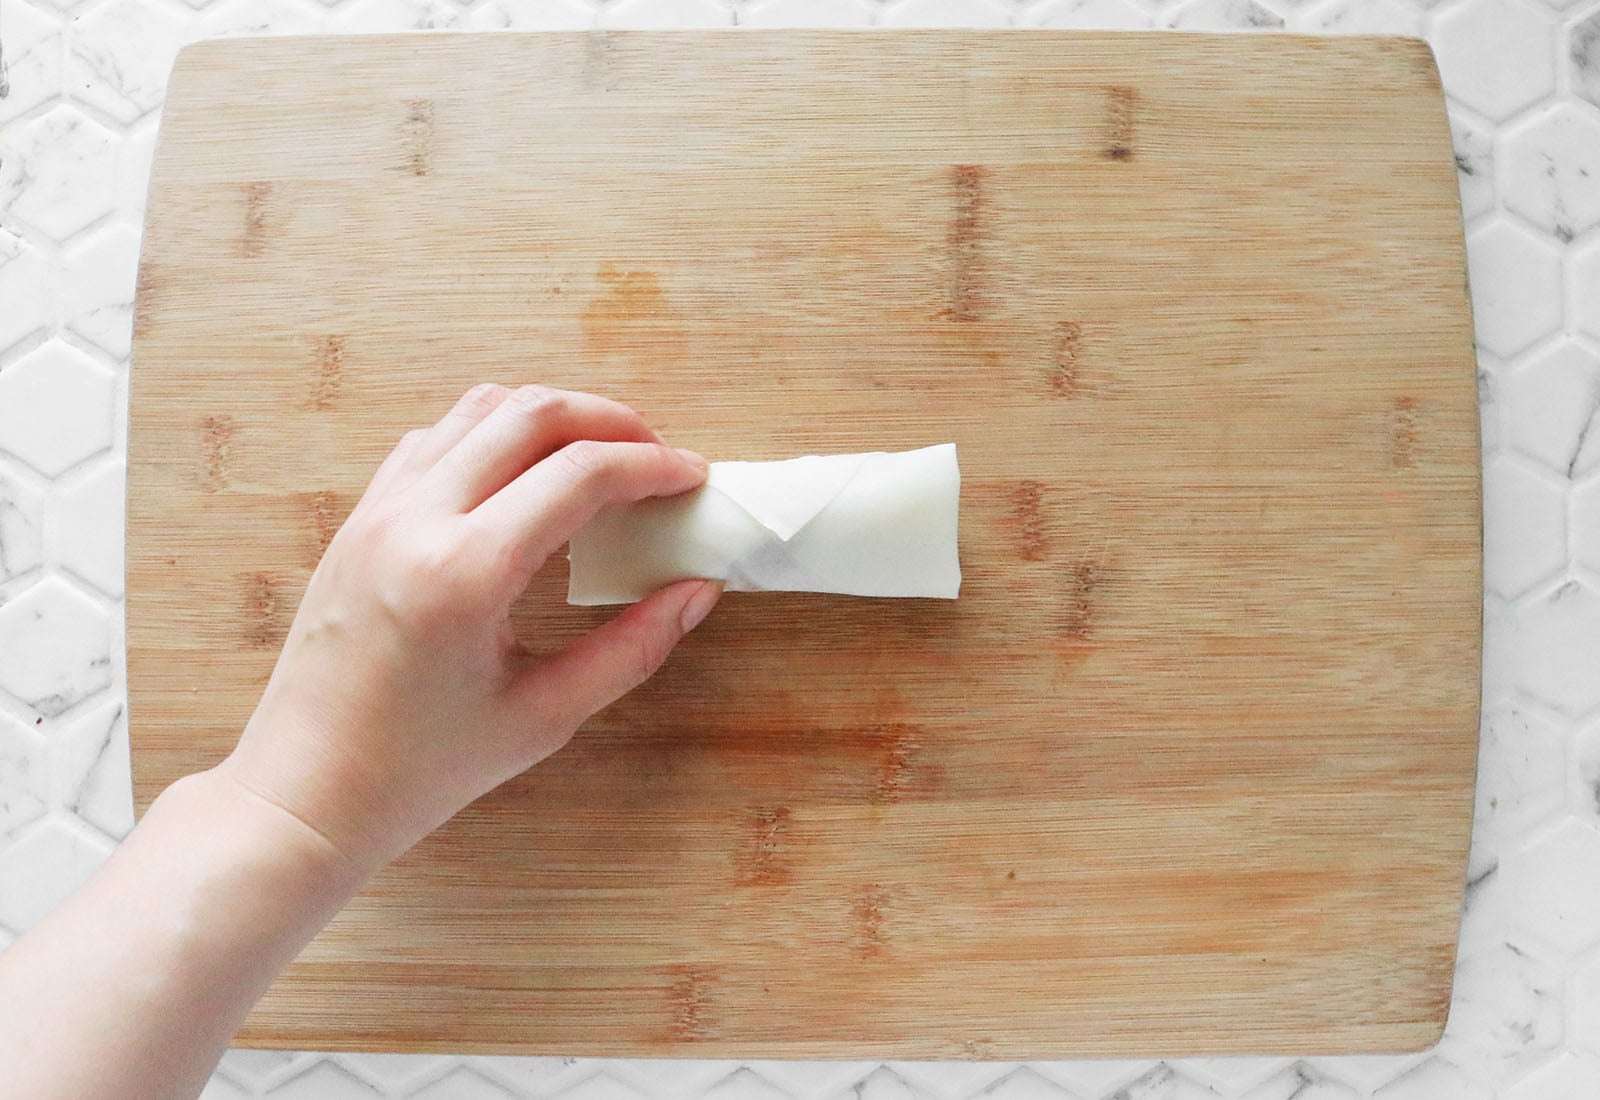 Roll up turon and seal wrapper